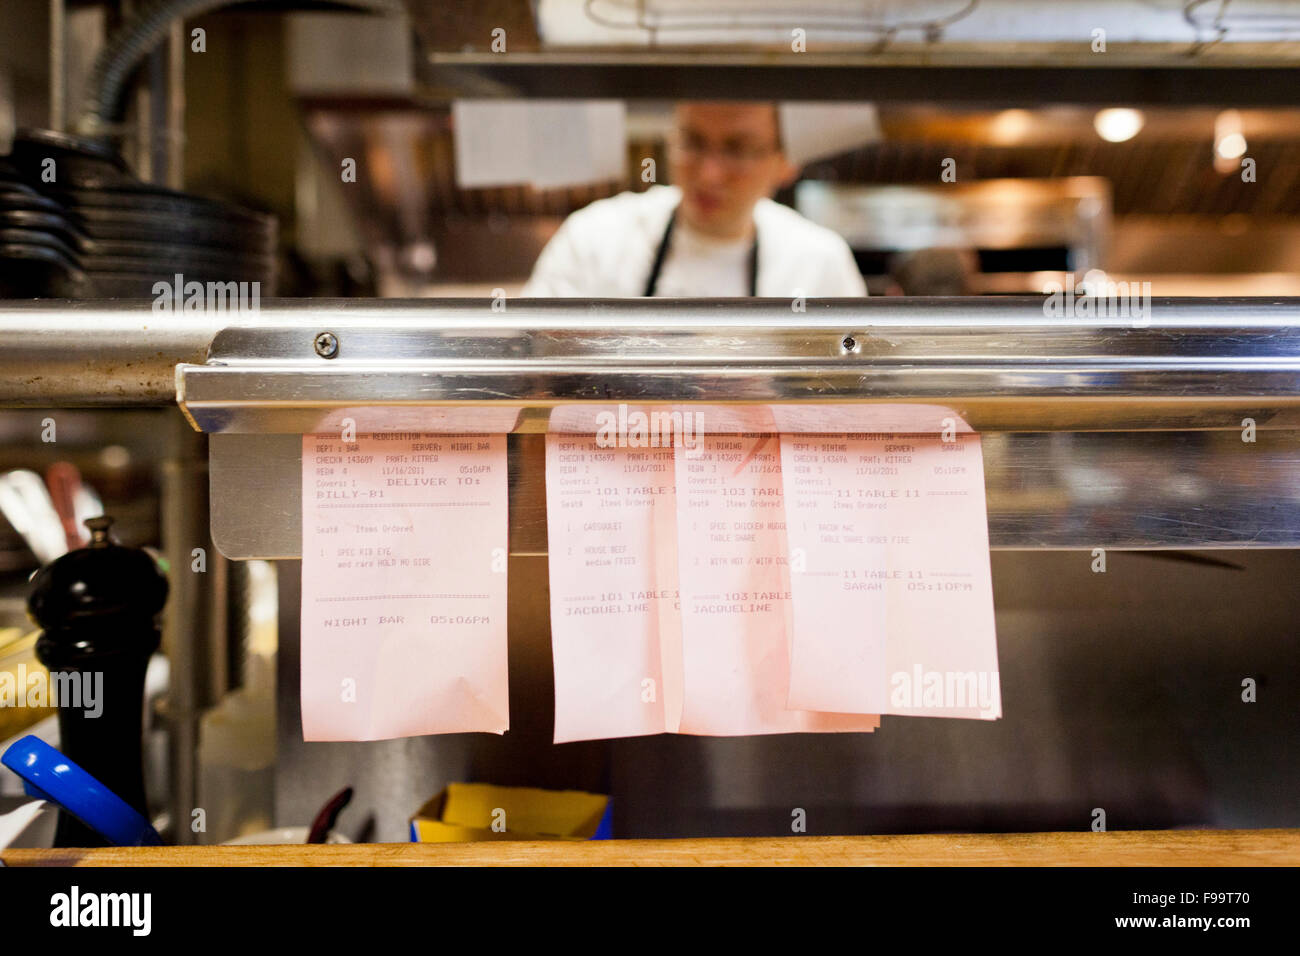 Cook And Detail Of Restaurant Order Ticket Slips In